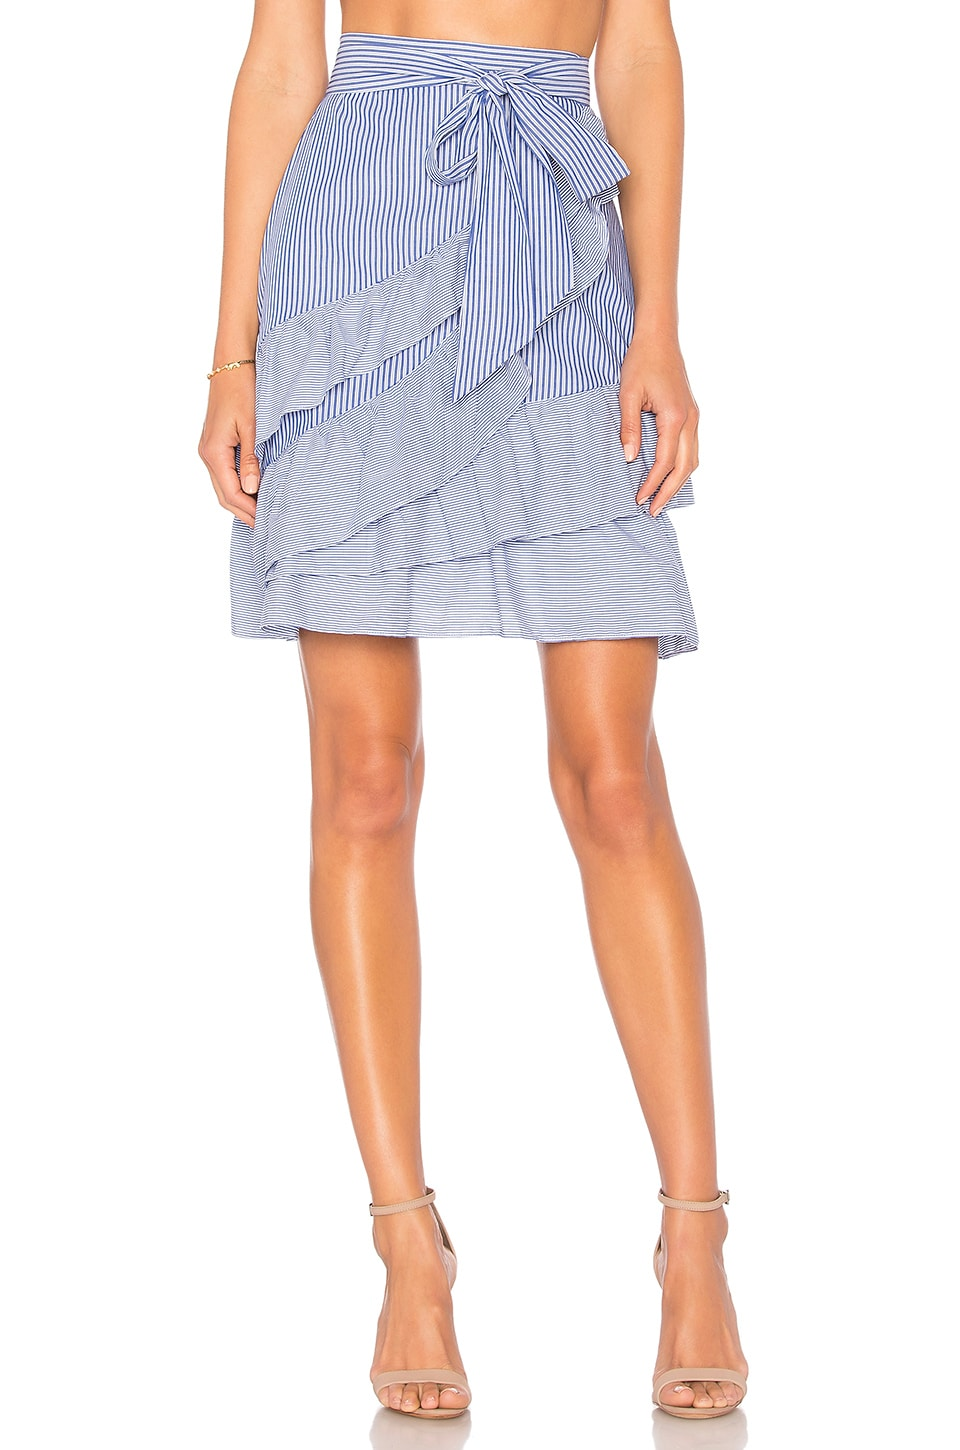 Parker Lambert Skirt in Blue & White